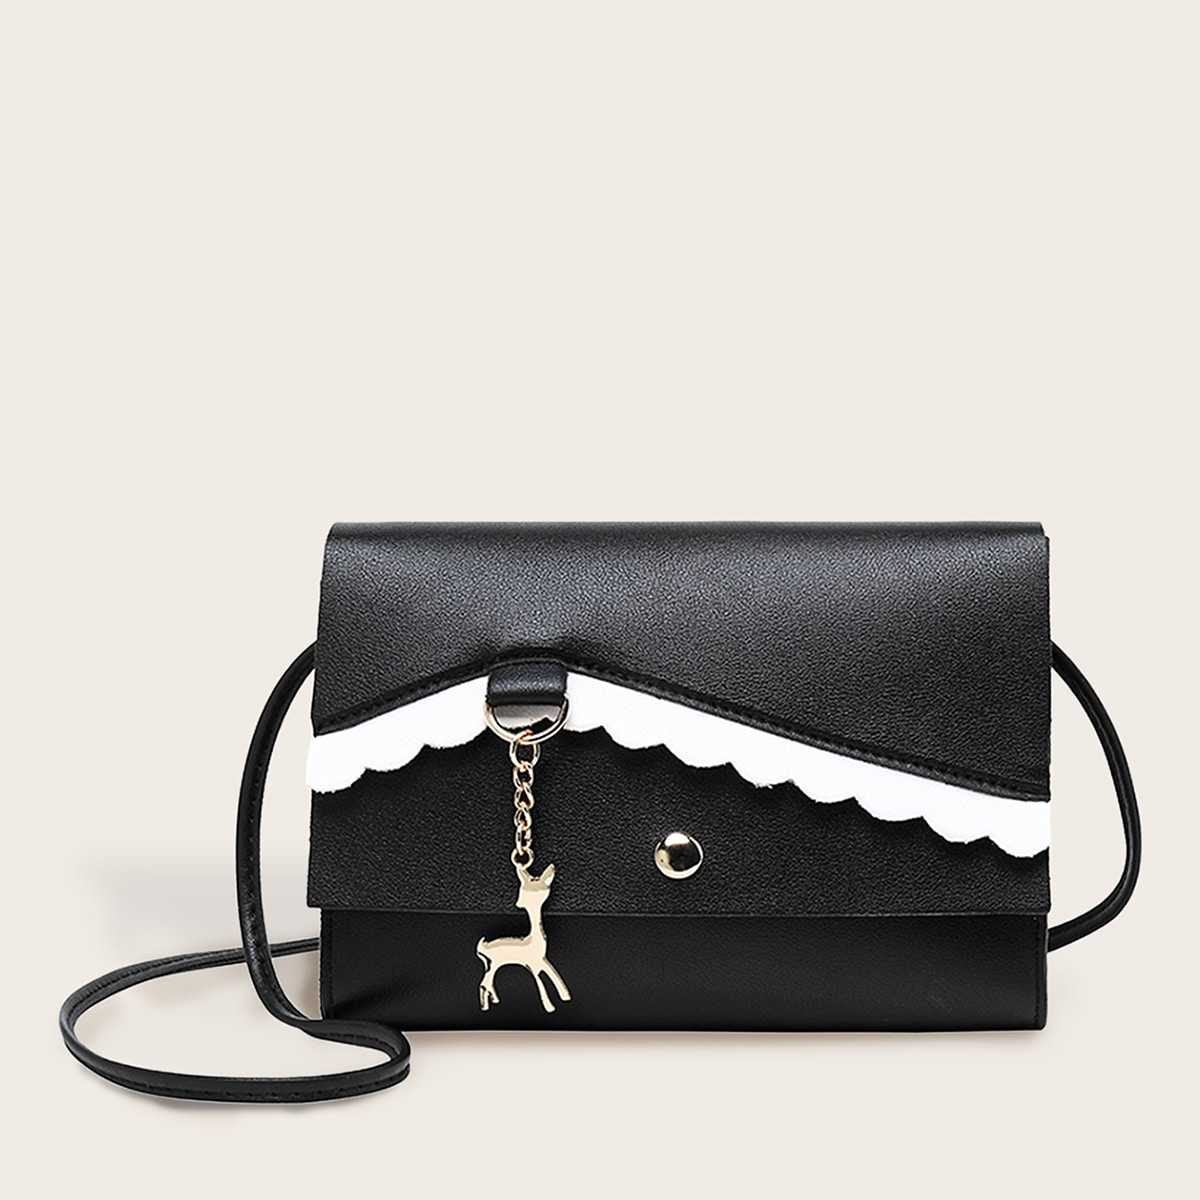 Deer Charm Decor Scalloped Detail Bag in Black and White by ROMWE on GOOFASH